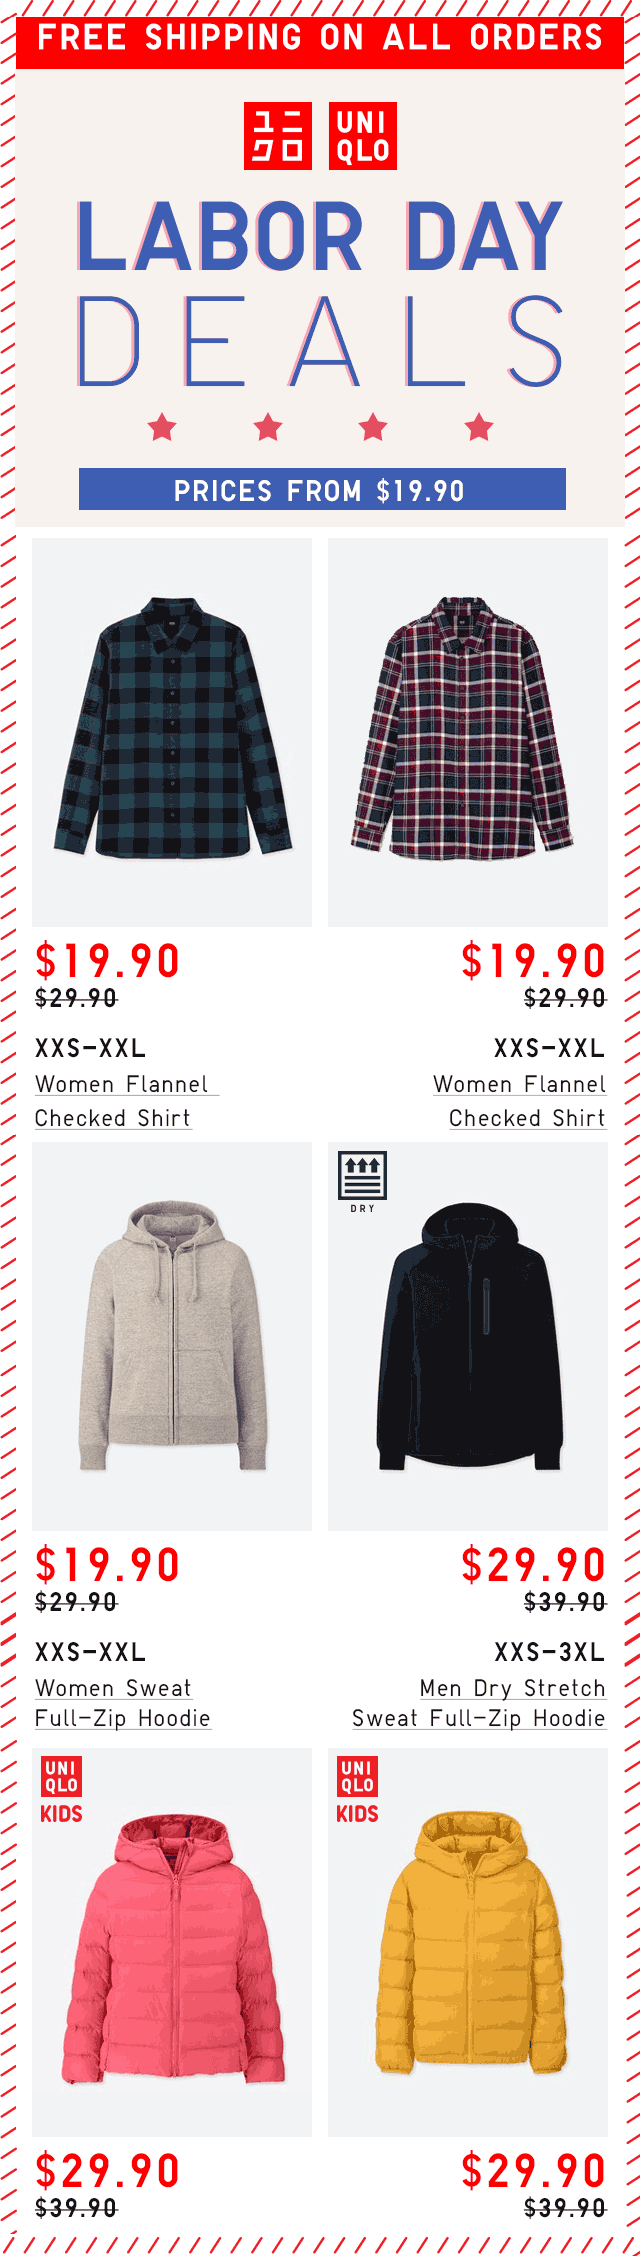 Uniqlo Coupon October 2019 $10 off sweaters & more at Uniqlo, ditto online